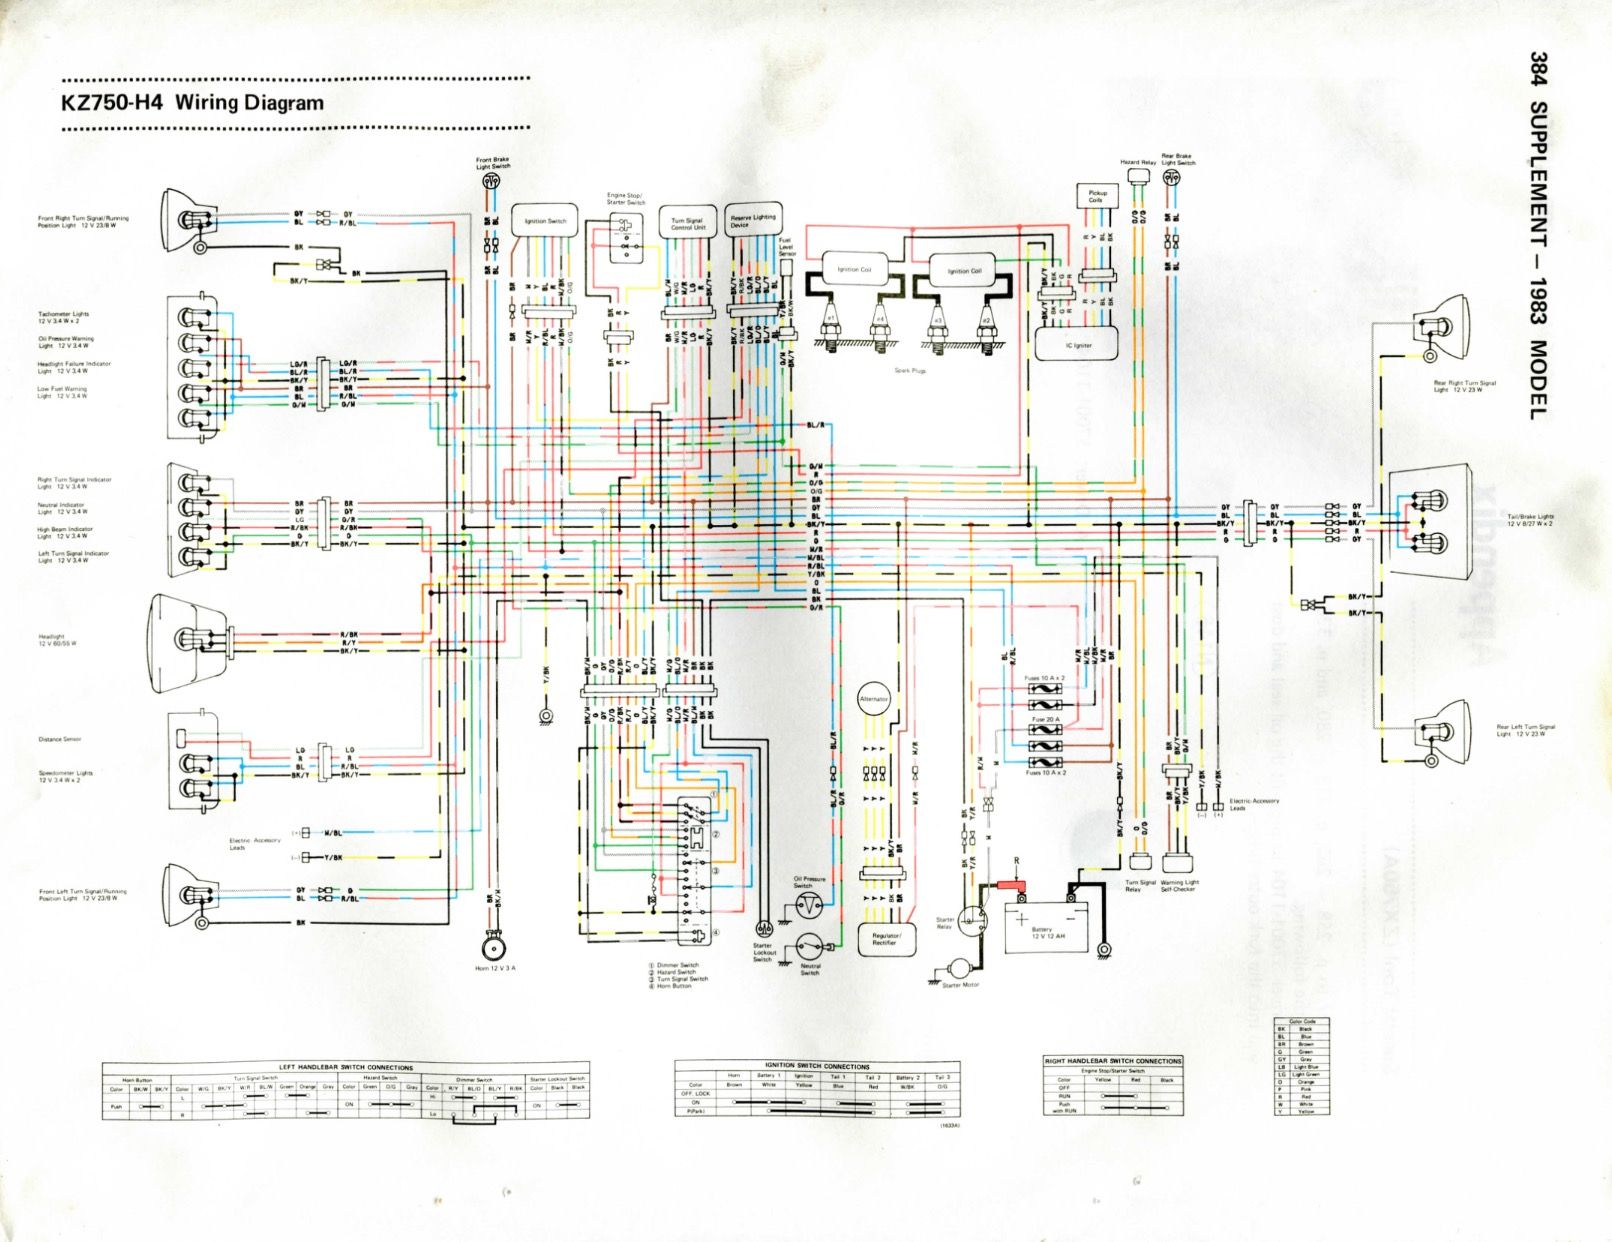 [GJFJ_338]  1983 Kawasaki KZ750 H4 LTD wiring diagram, highly utilized during wiring  and harness install. | Diagram, Trailer light wiring, Wire | Kawasaki 250 Ltd Wiring Diagram |  | Pinterest